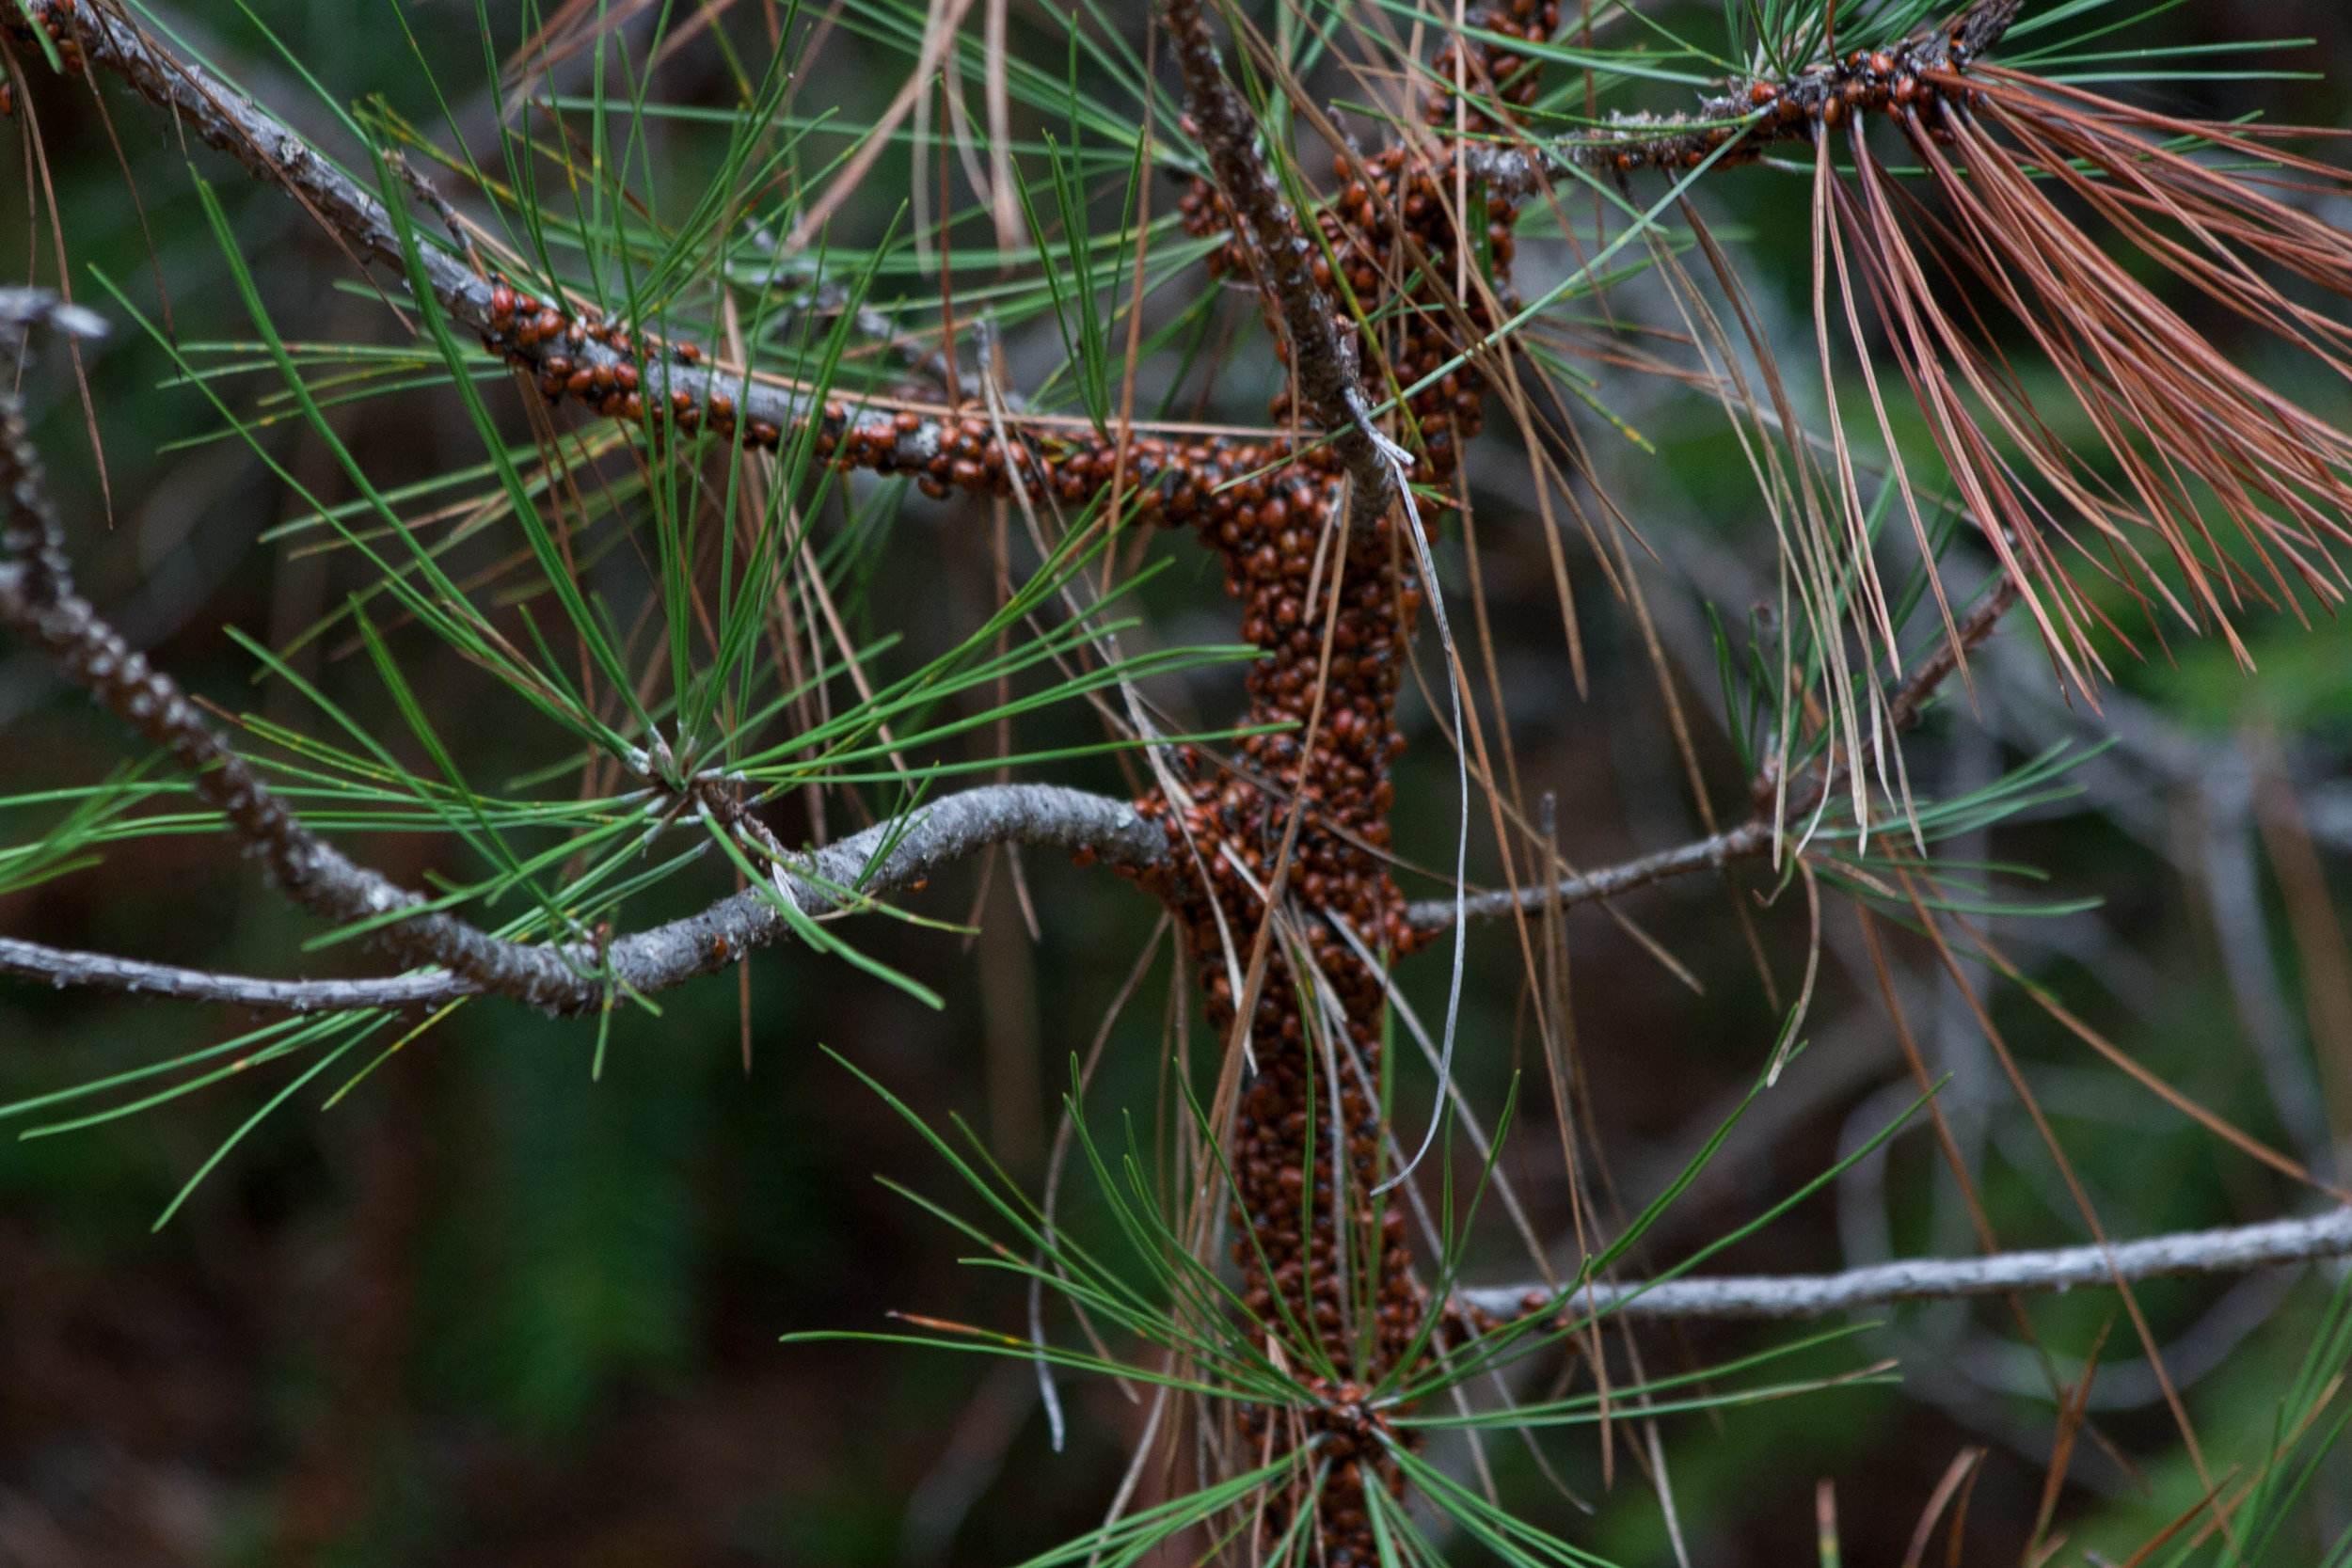 Ladybug takeover of a small Pine tree. Humbug Trail. Malakoff Diggins State Park, CA.